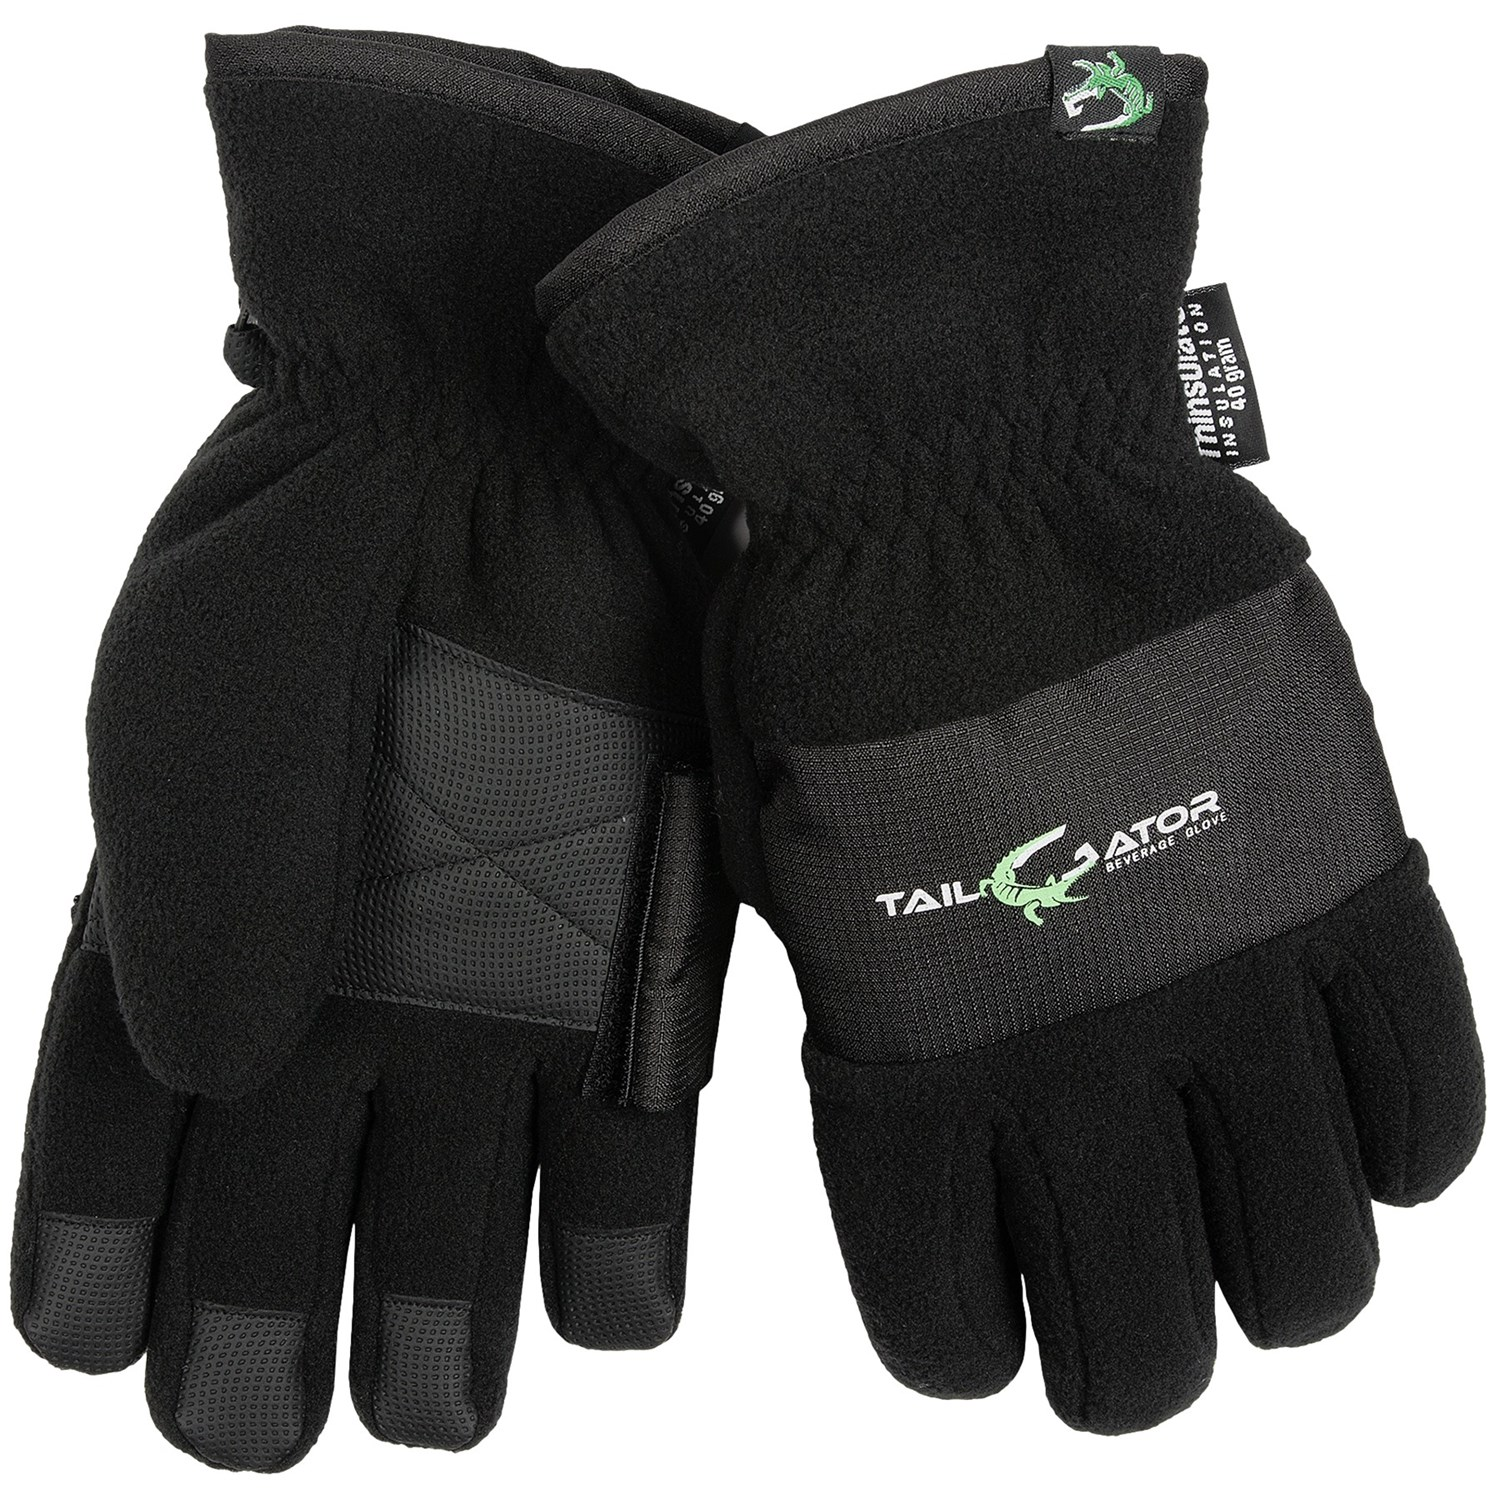 Black gloves lincoln -  Gloves Out There Blacktailgator